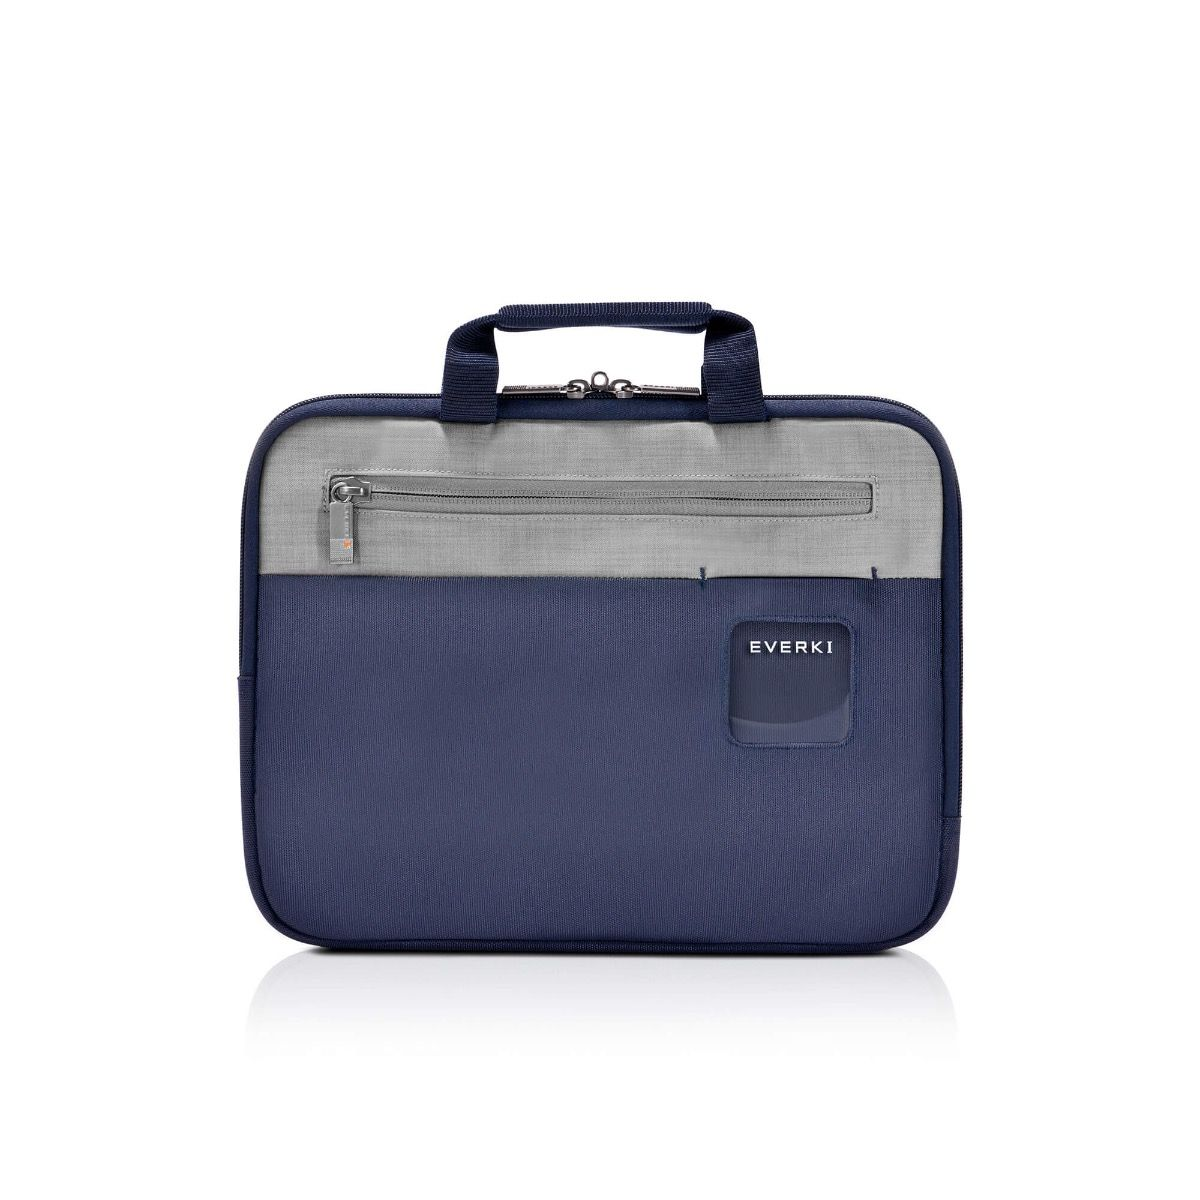 EVERKI ContemPRO 11 Inch Navy Laptop Sleeve